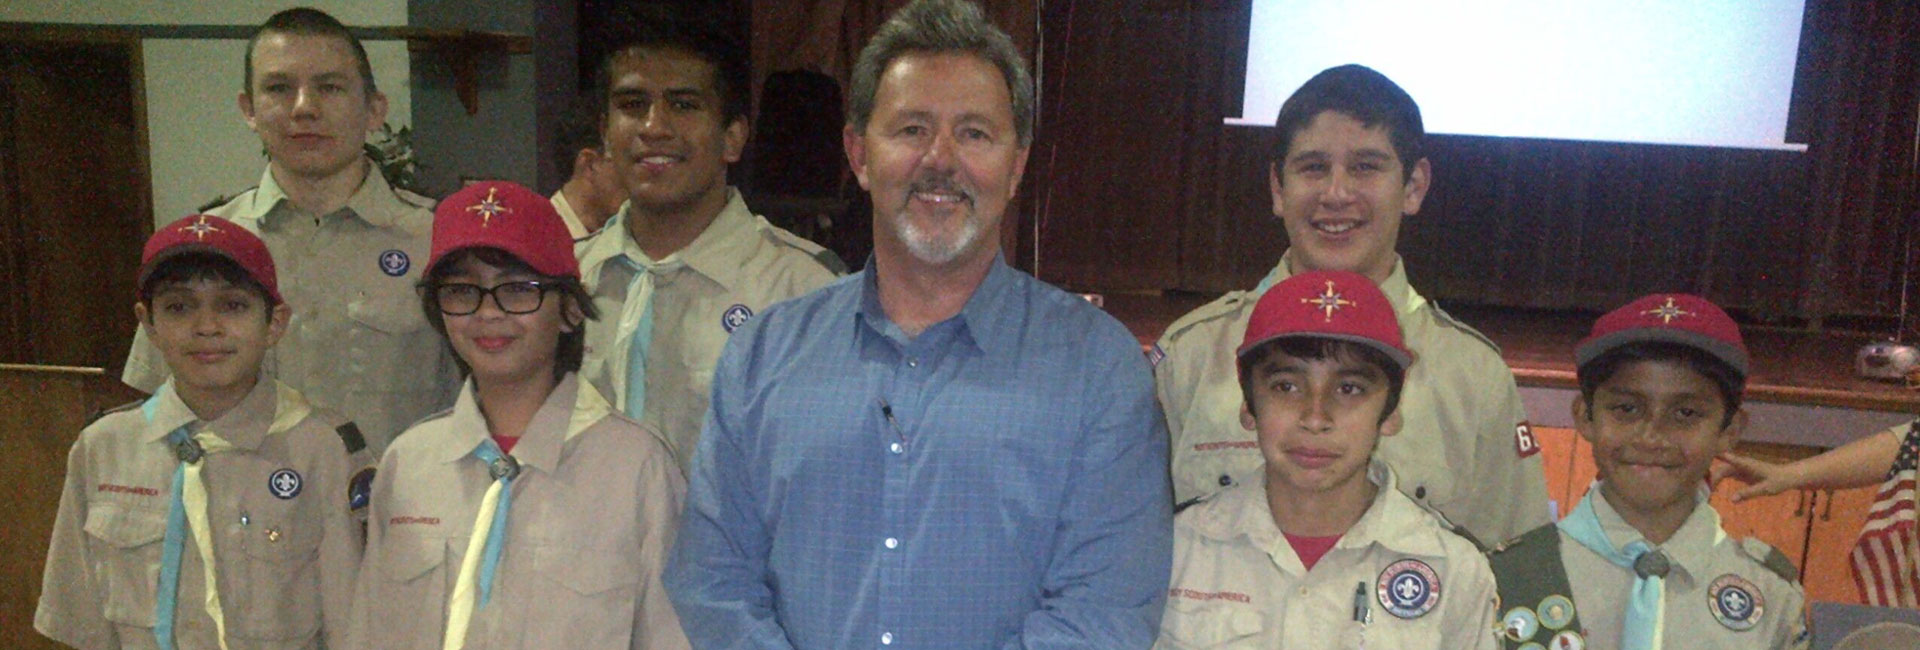 Fernando Dutra with Boy Scouts